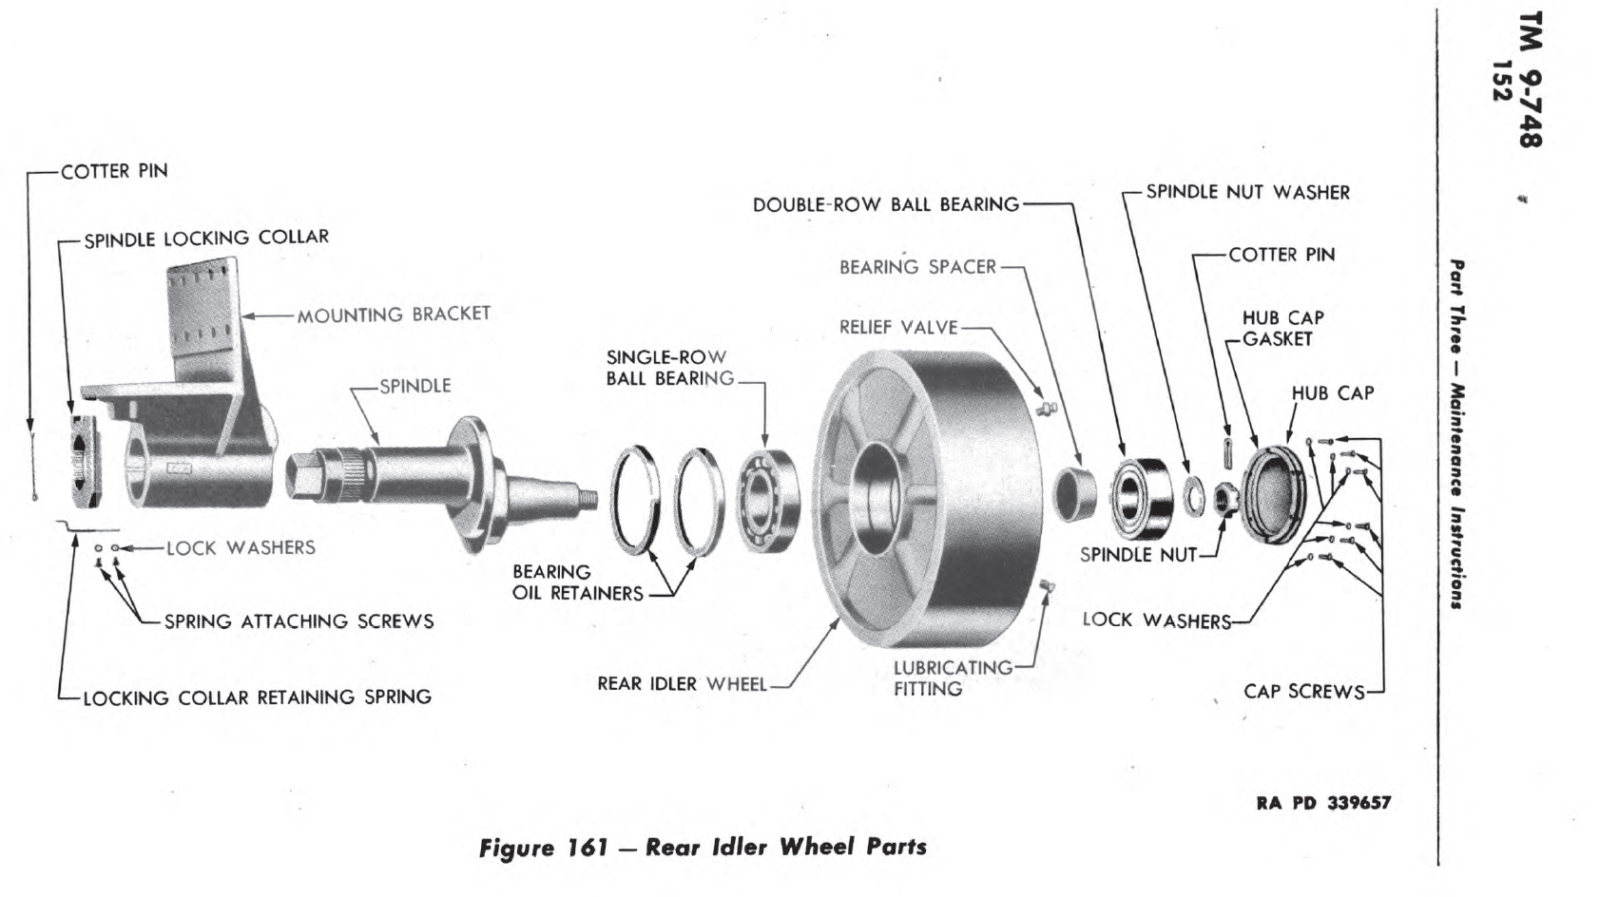 Sherman Idler diagram